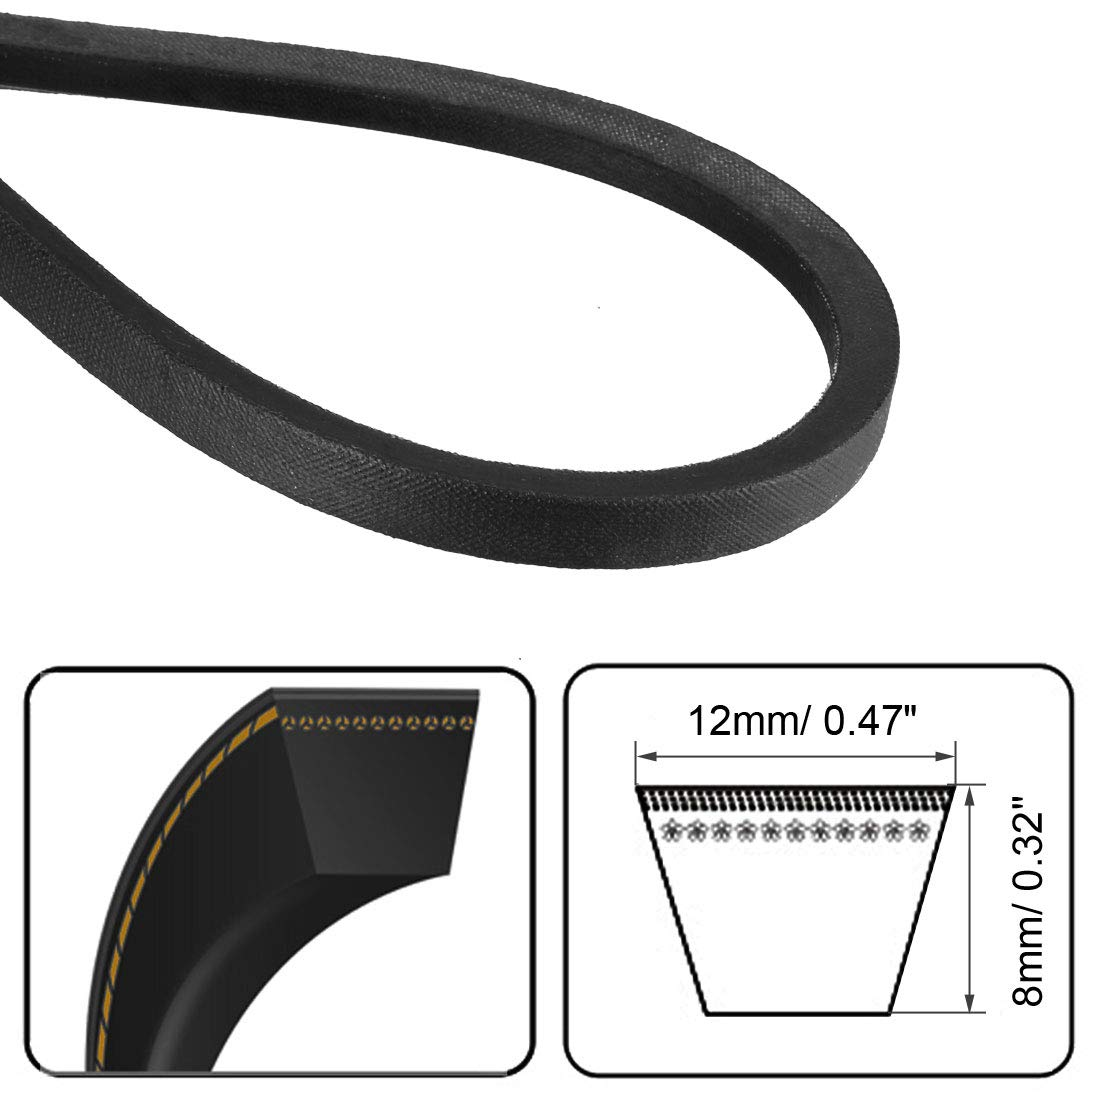 uxcell A-1000//A39 Drive V-Belt Inner Girth 39-inch Industrial Power Rubber Transmission Belt